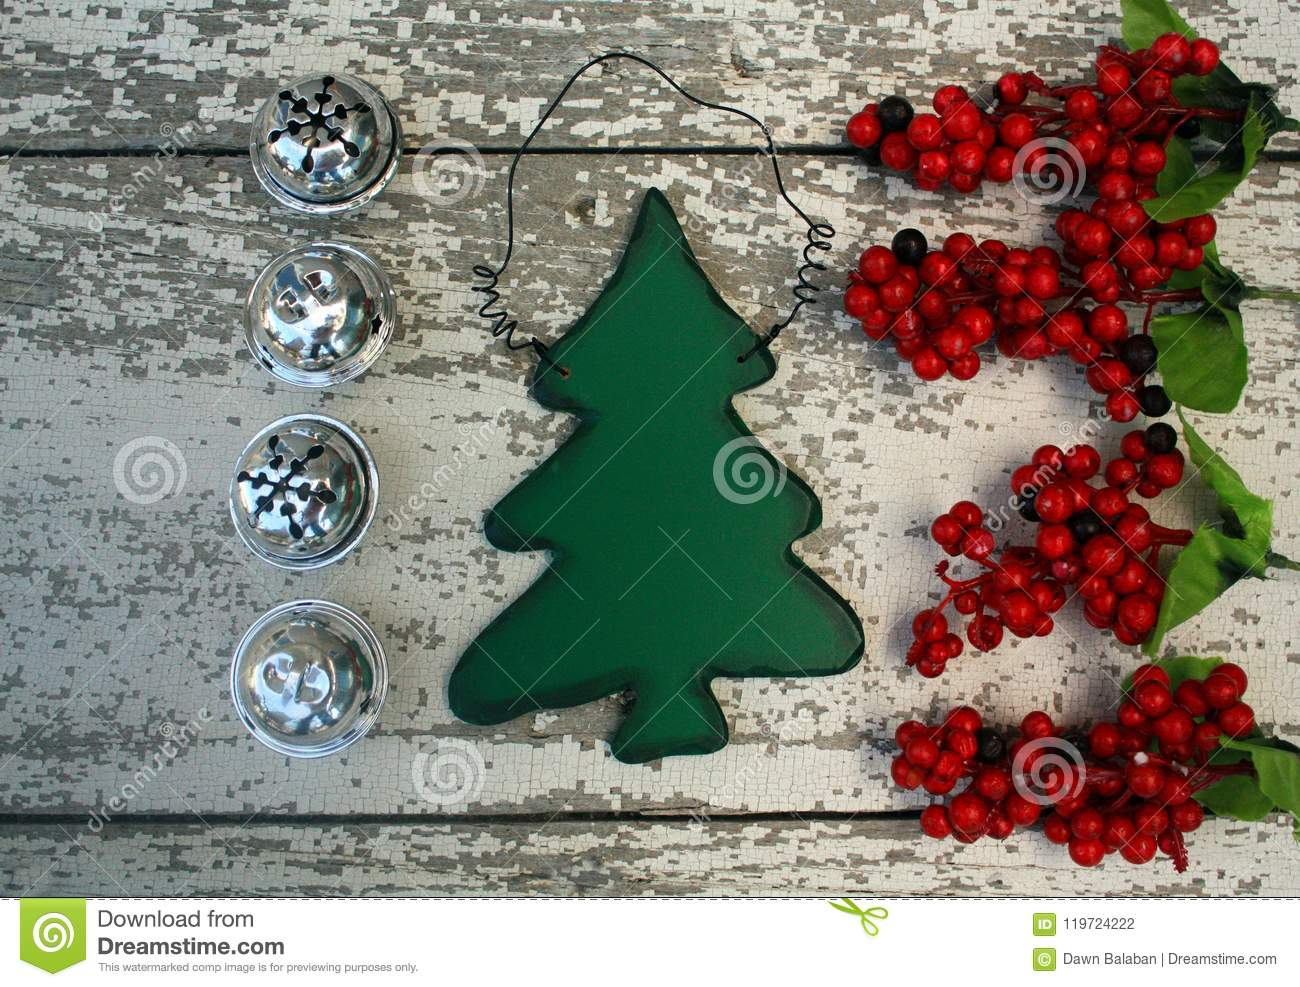 download christmas tree decoration on white background with red berries stock photo image of decoration - Red Berry Christmas Tree Decorations